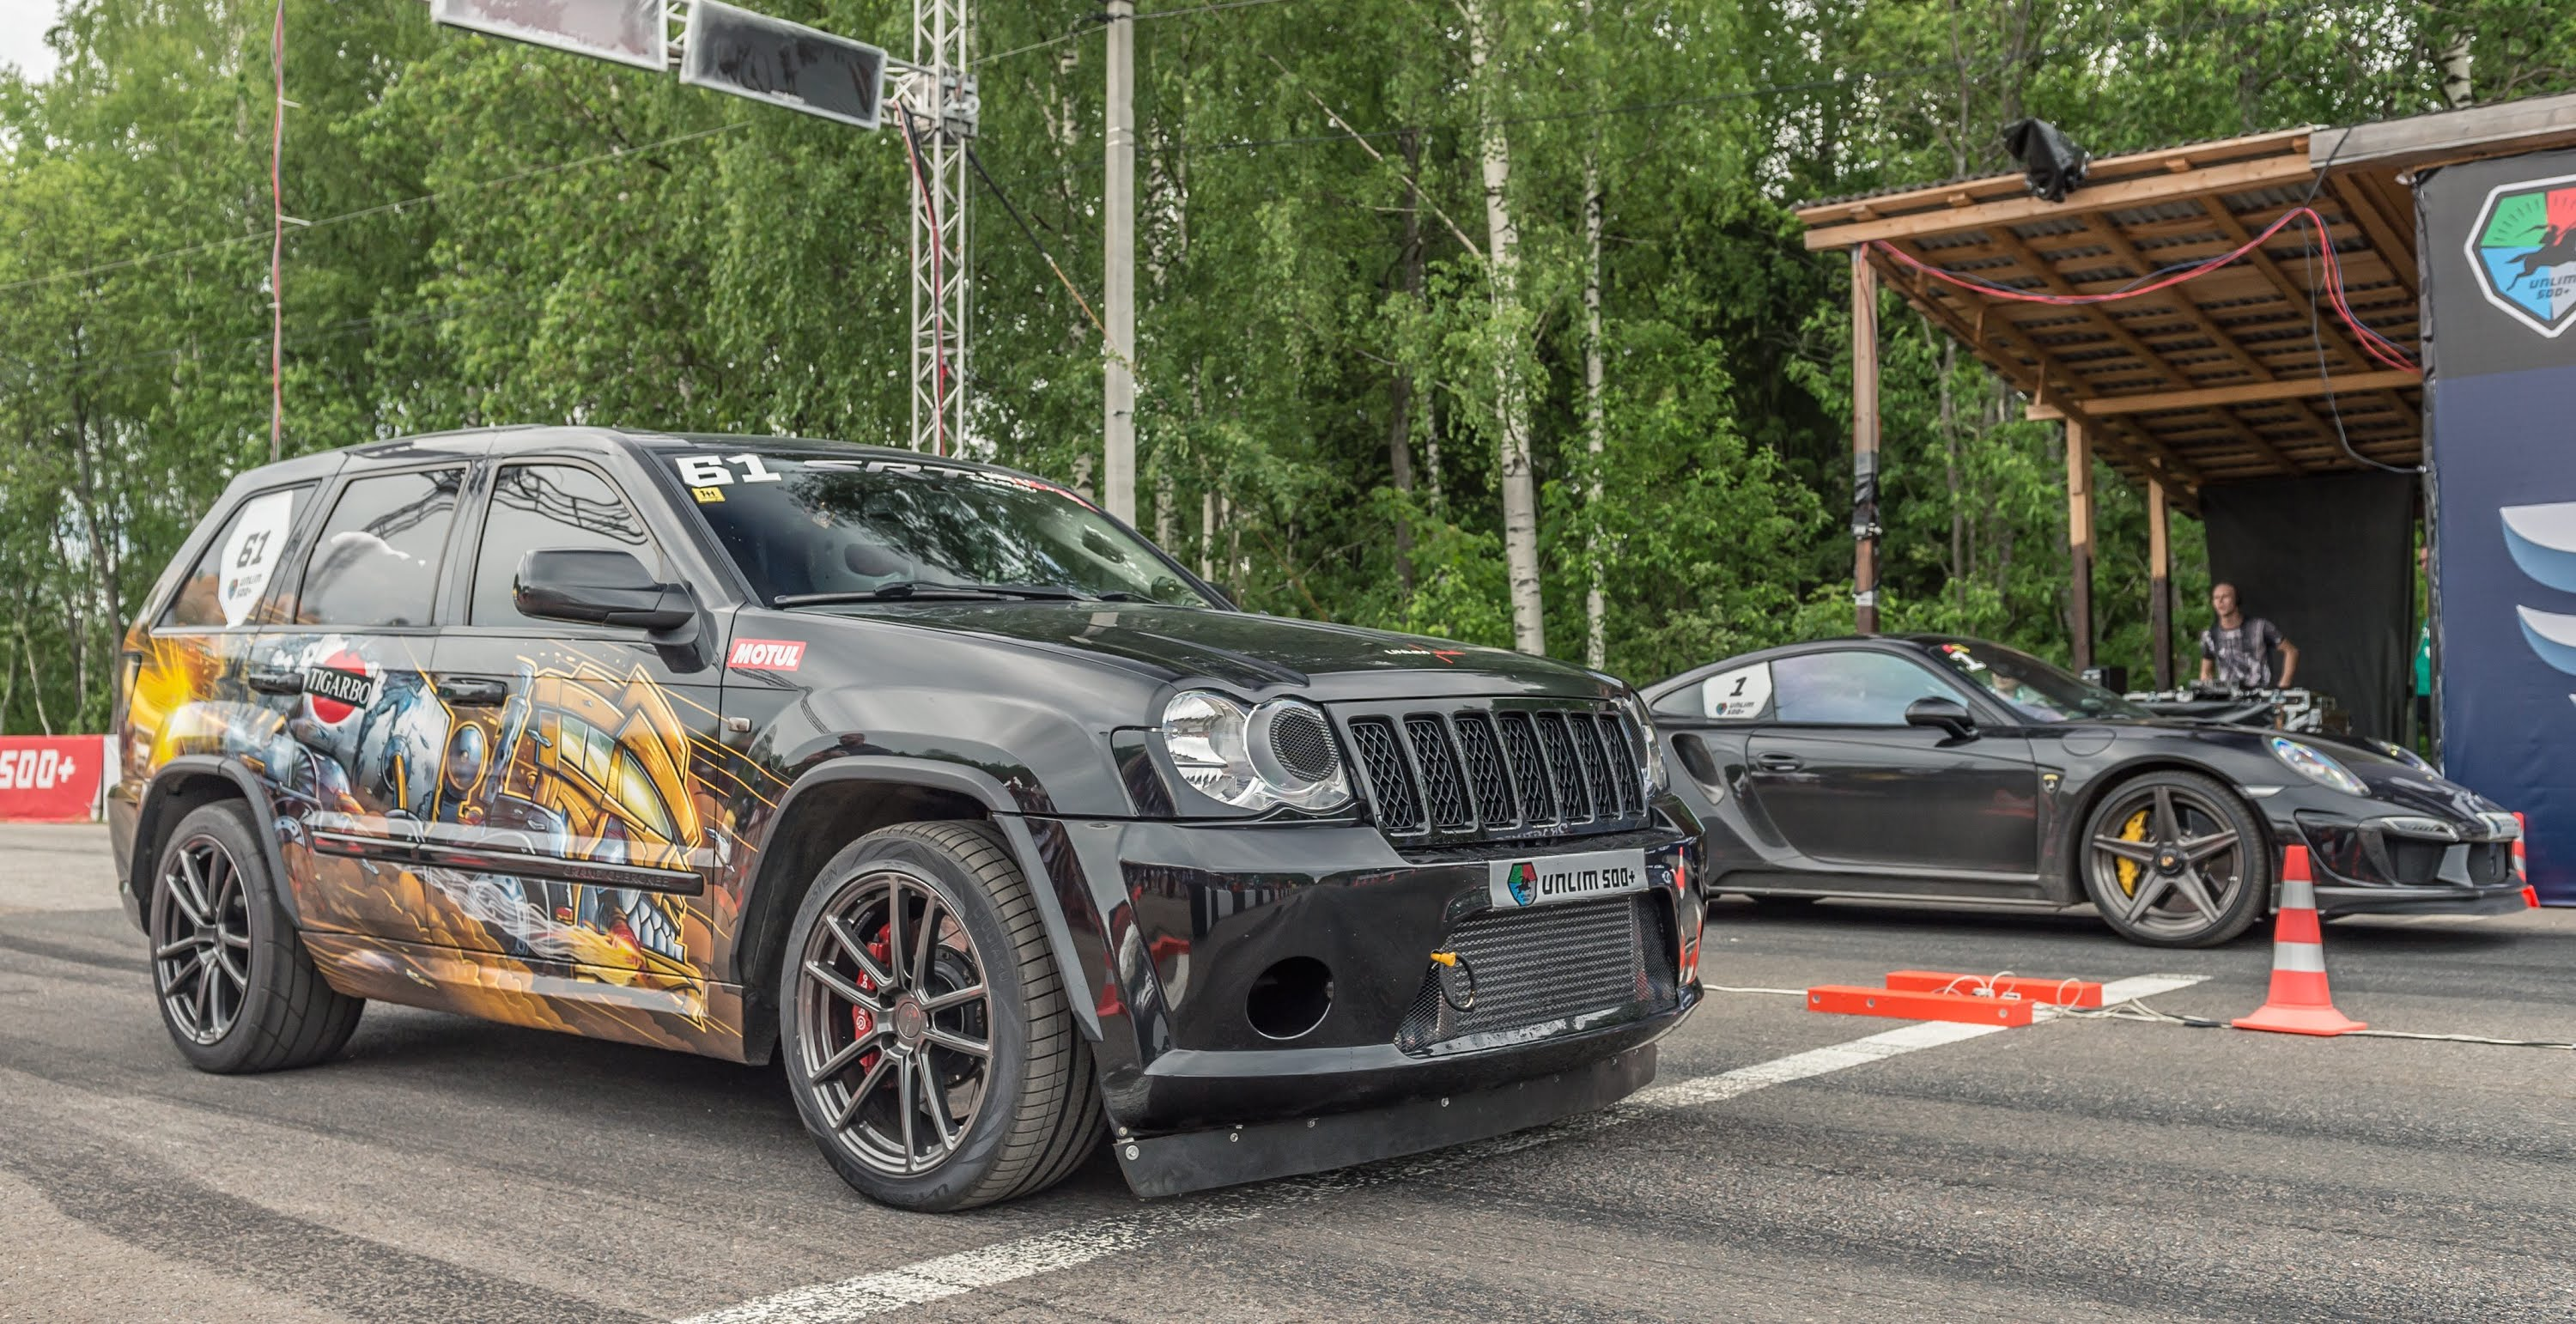 Jeep SRT8 Twin-Turbo Vs Porsche 911 Turbo S